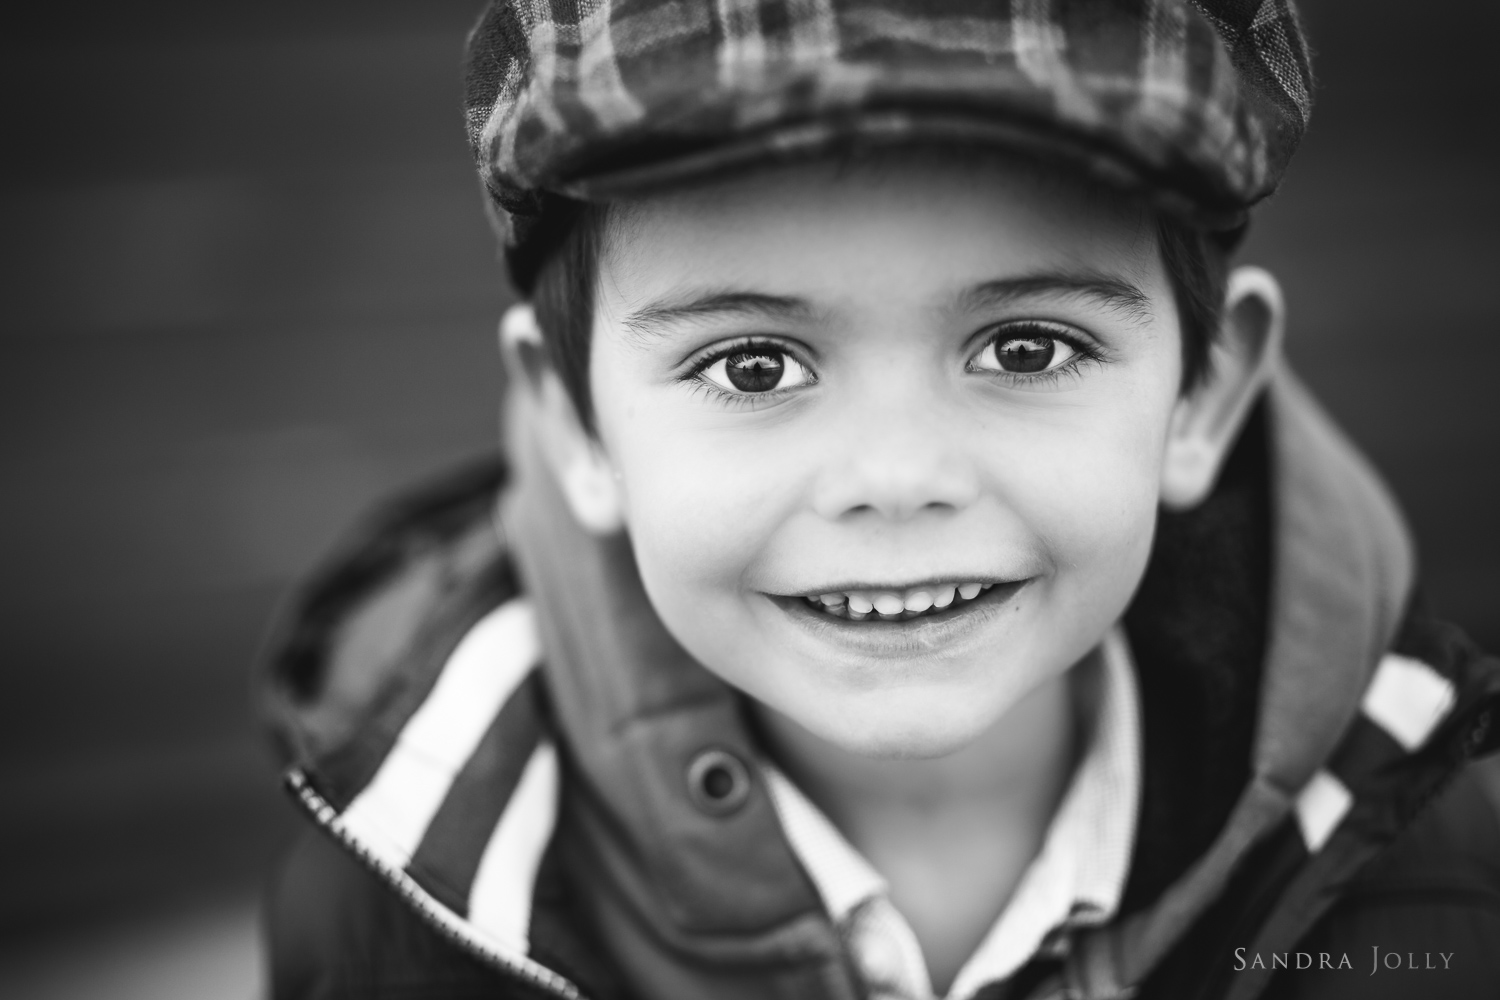 portrait-of-a-little-boy-by-stockholm-barnfotograf-sandra-jolly.jpg